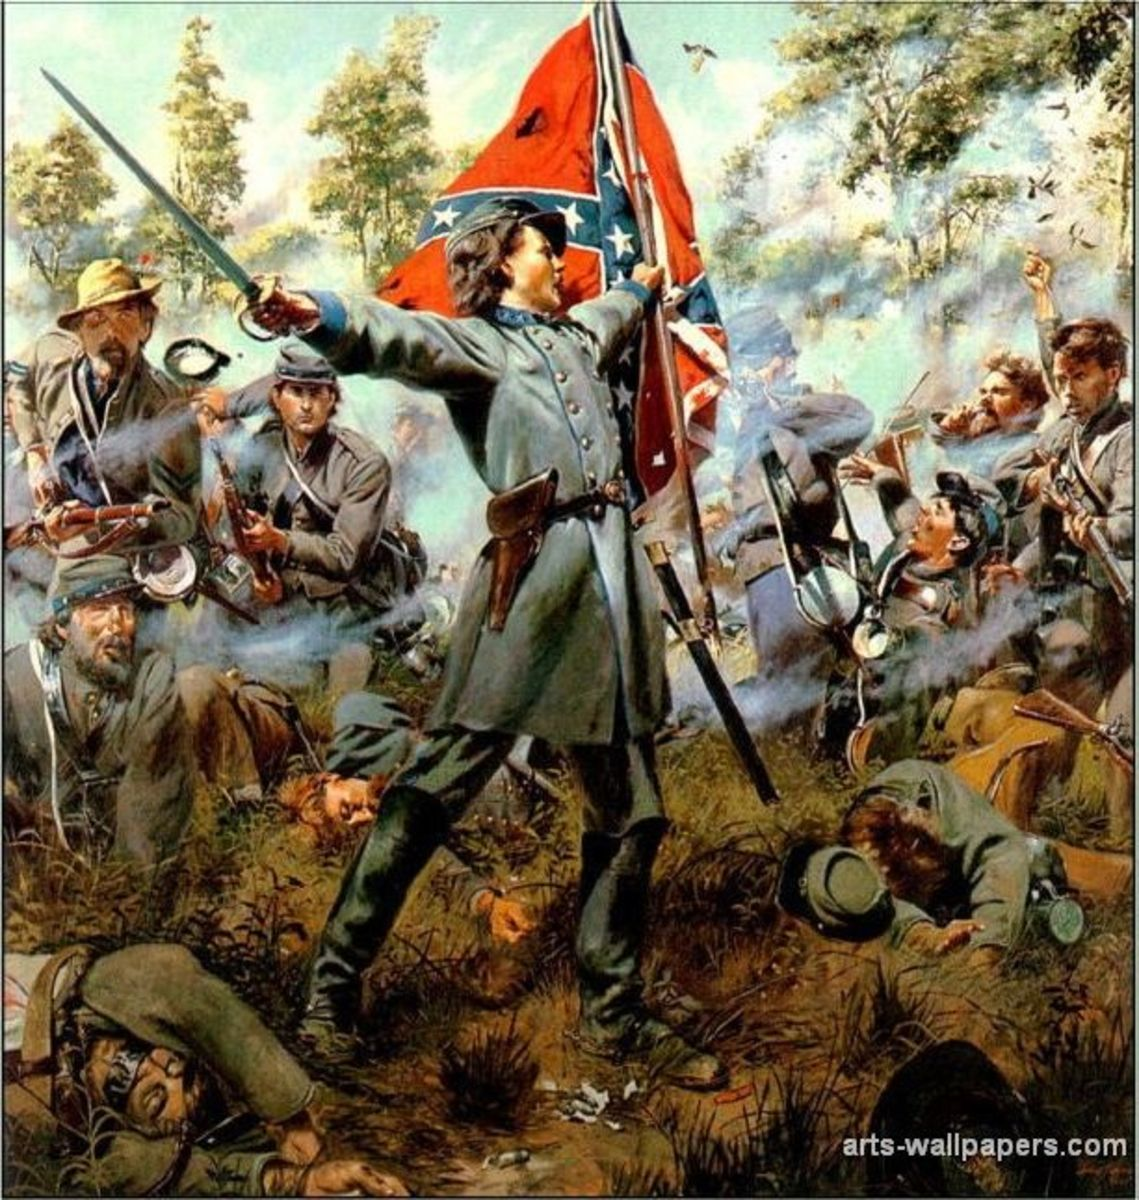 The Confederates had the mindset that their cause in the war was right, and that the war was one of Northern Aggression. This sentiment can still be seen and felt today in some of the Southern states.